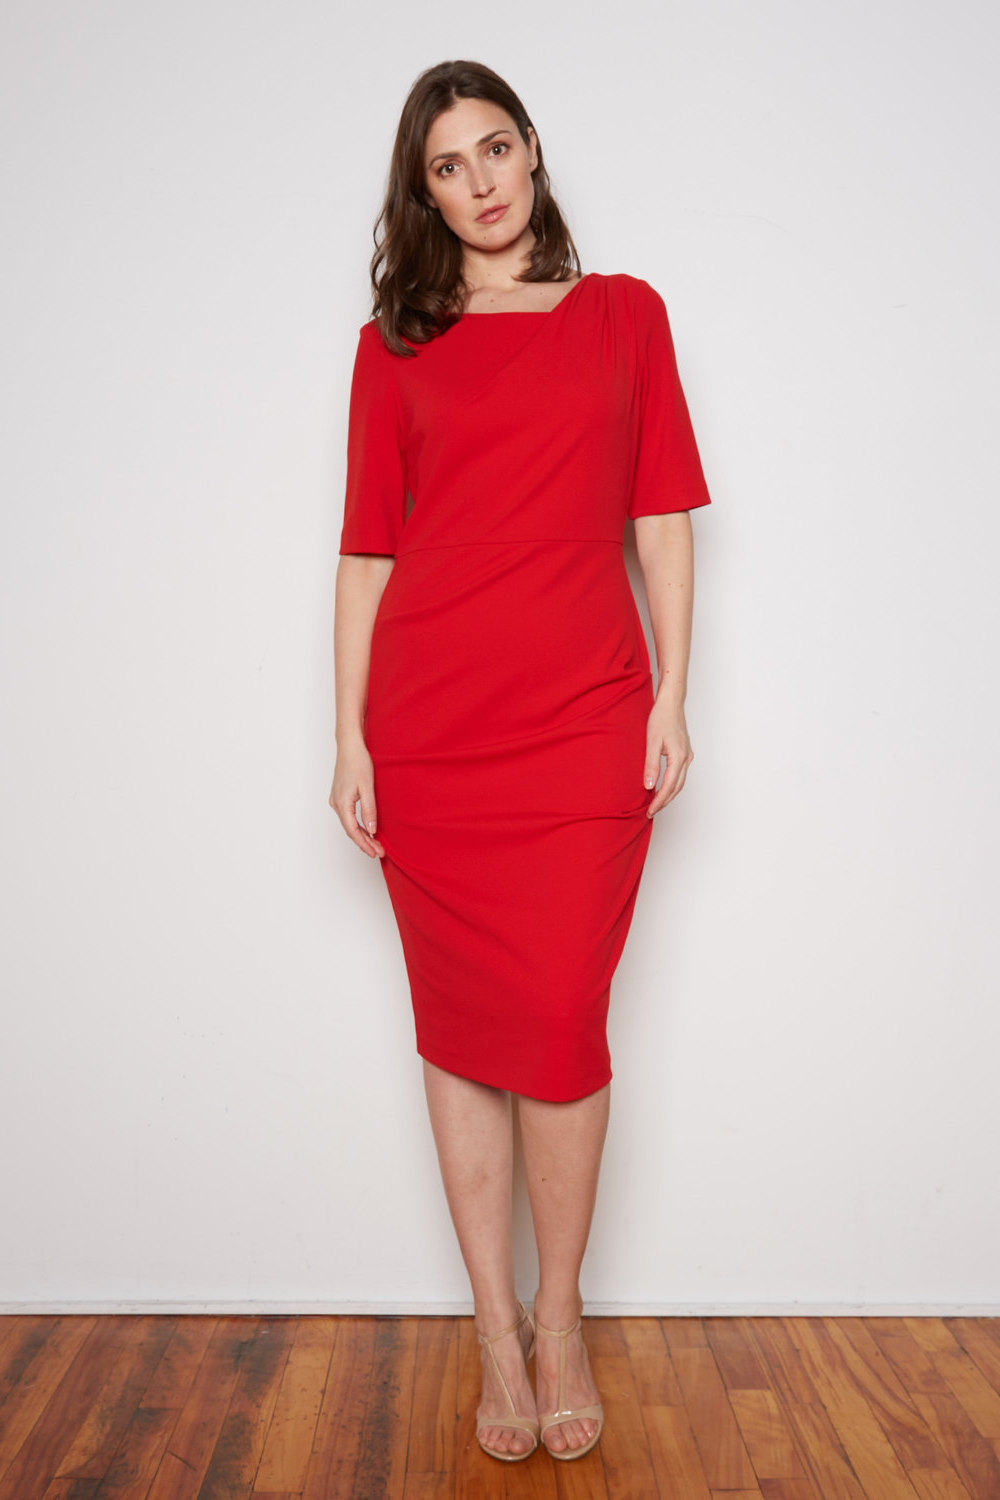 Joseph Ribkoff Robes Rouge A Levres 173 Style 201500